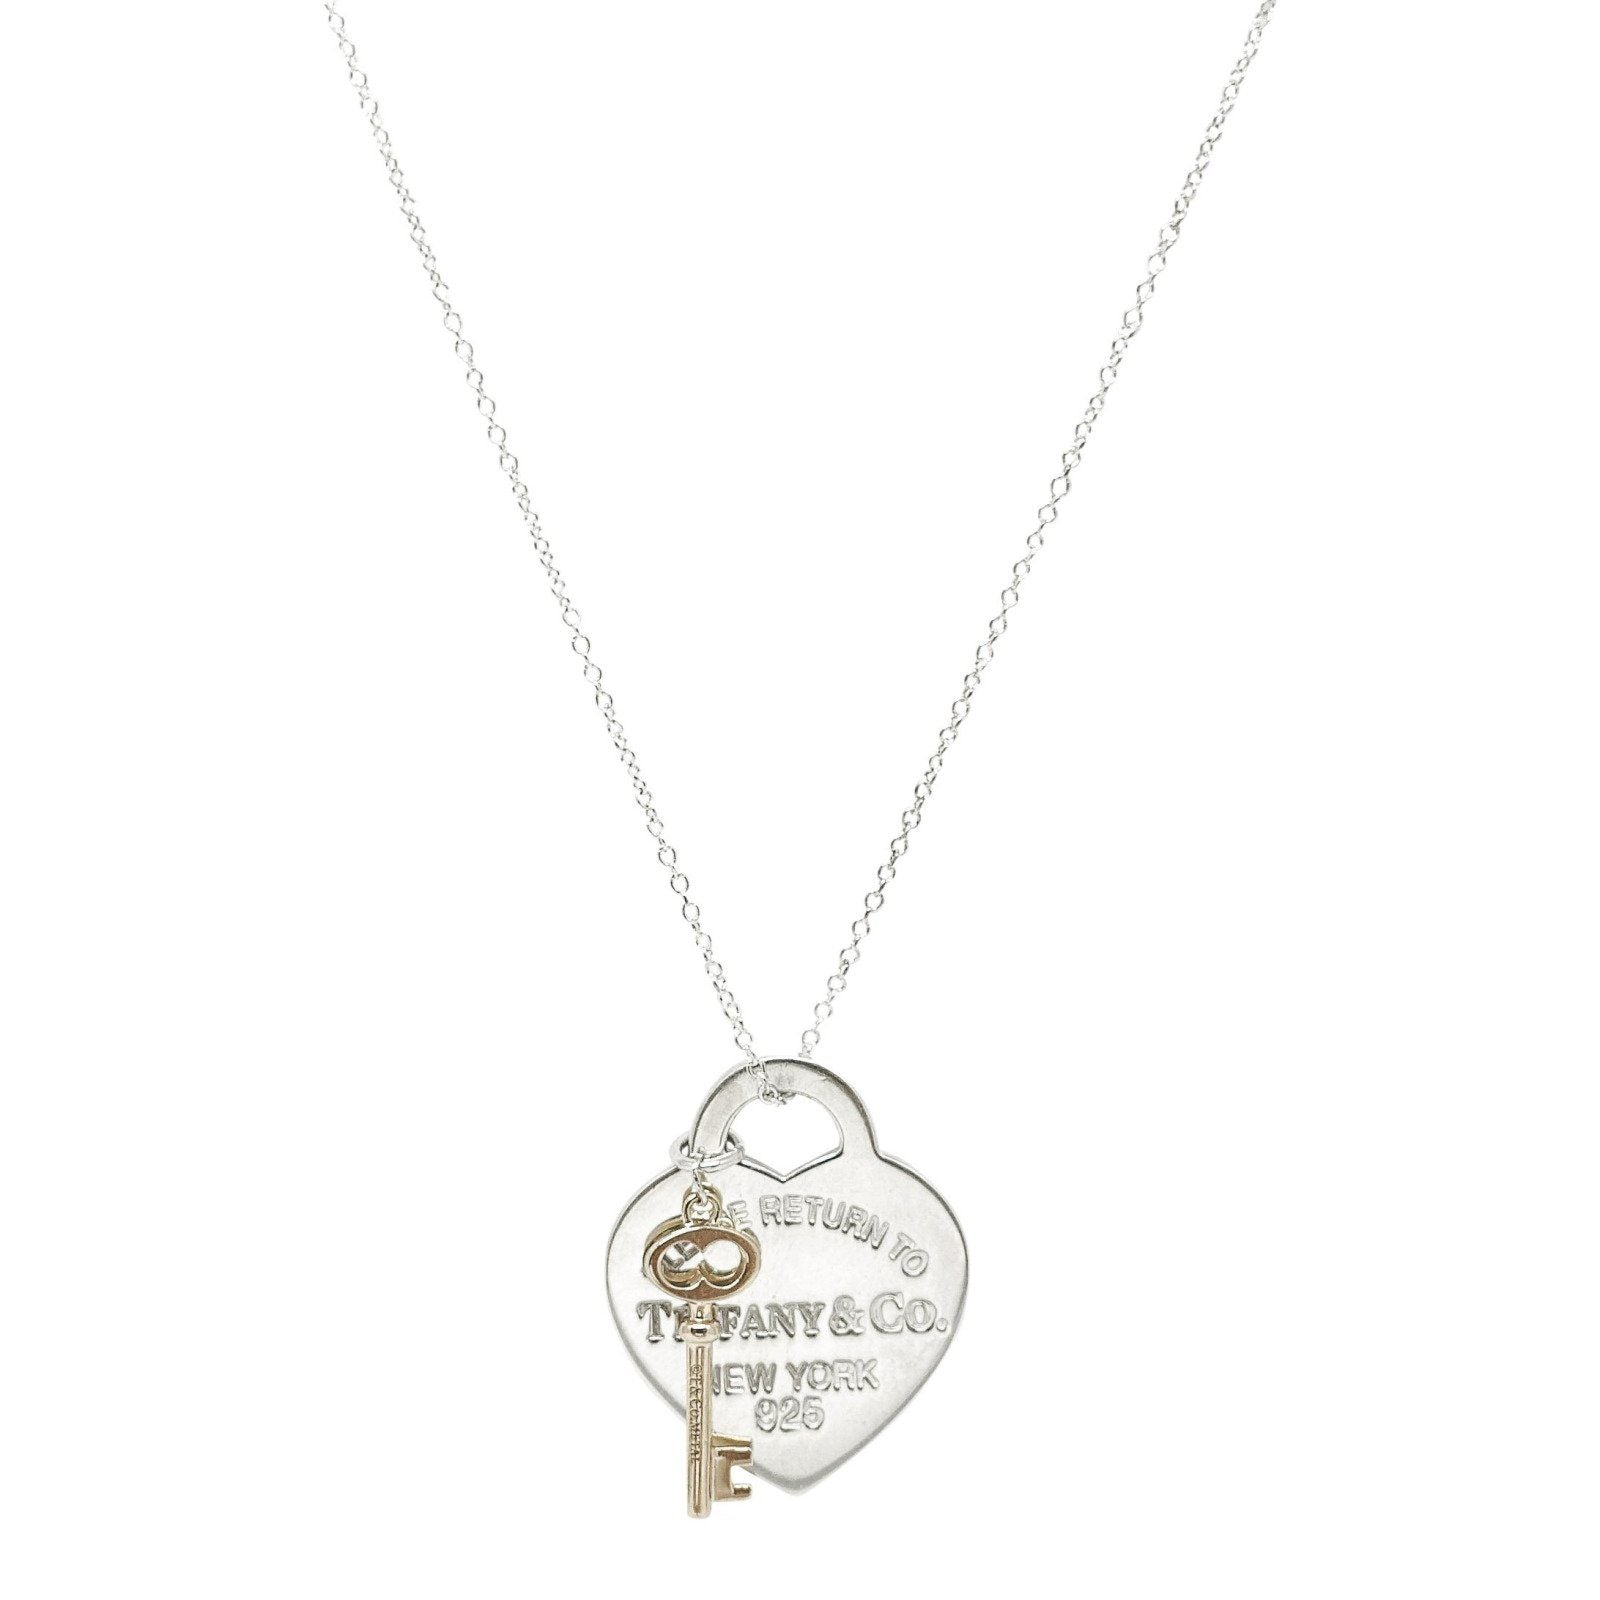 25a62c1ab Tiffany & Co. Return to Tiffany Heart Key Pendant Necklace Necklaces Tiffany  & Co.